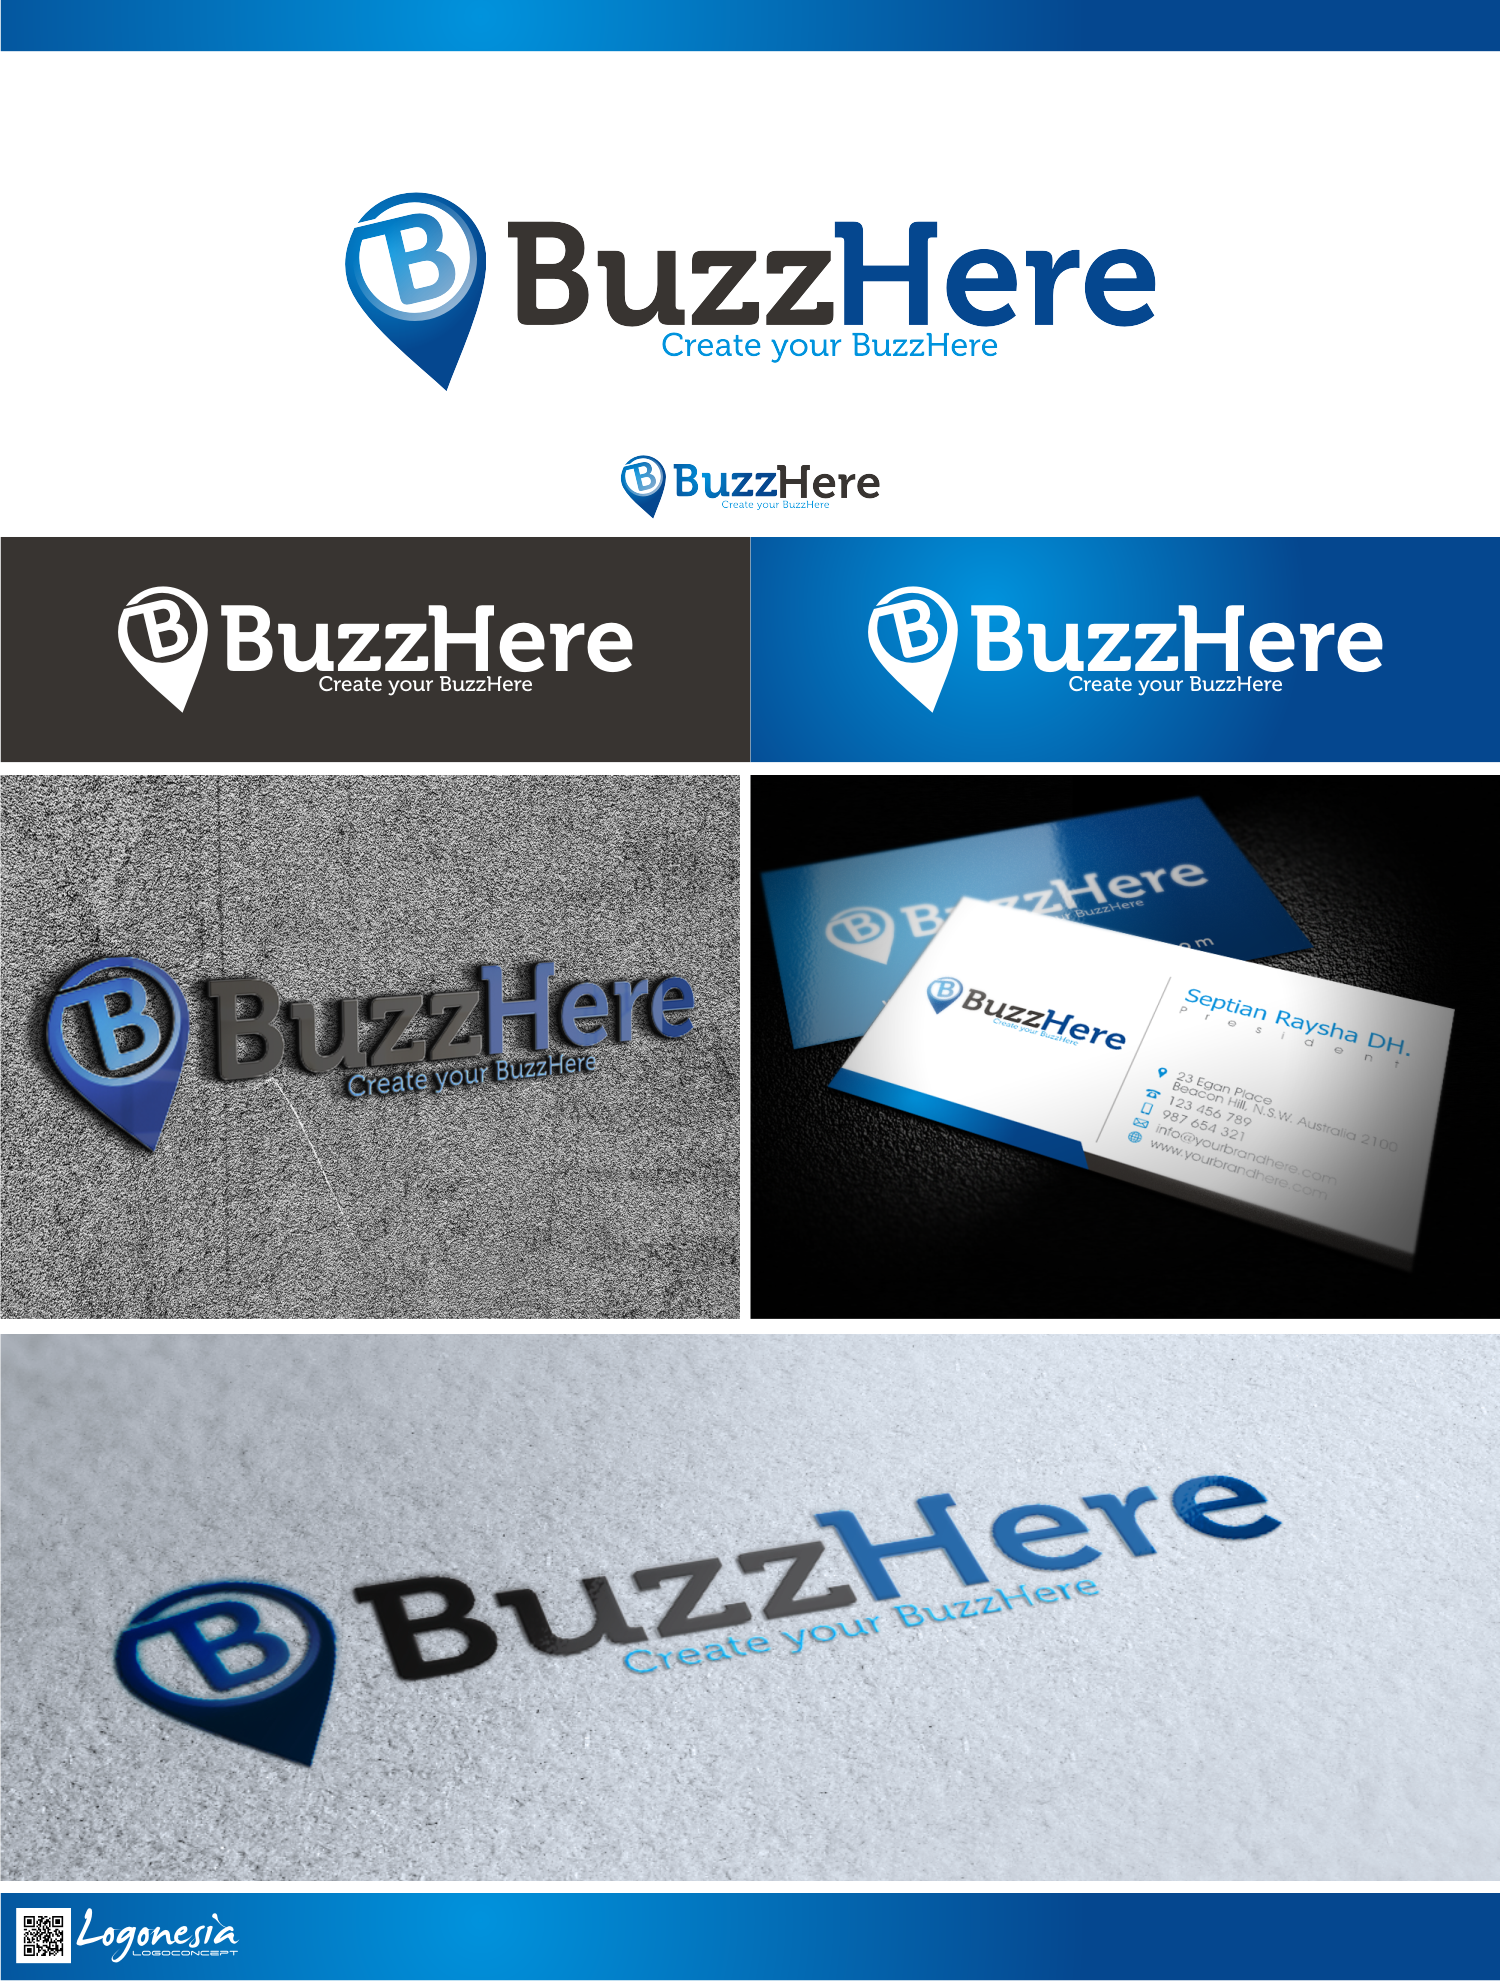 BuzzHere needs a new logo and business card